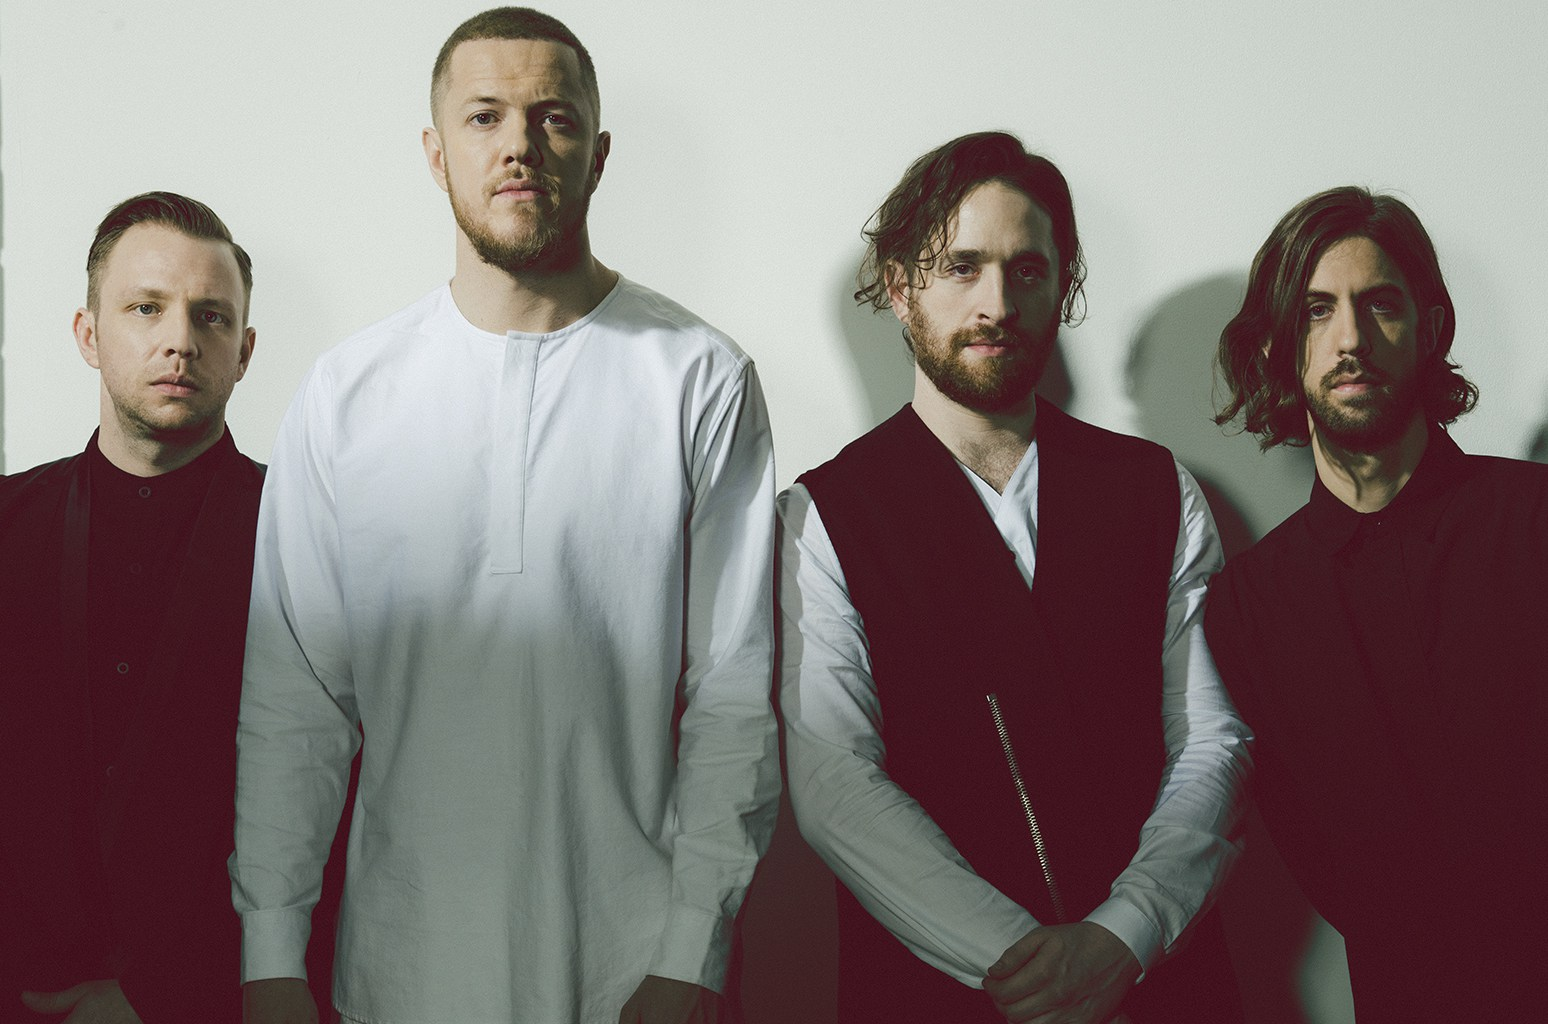 Gli Imagine Dragons inaugurano la finale di Champions a Madrid